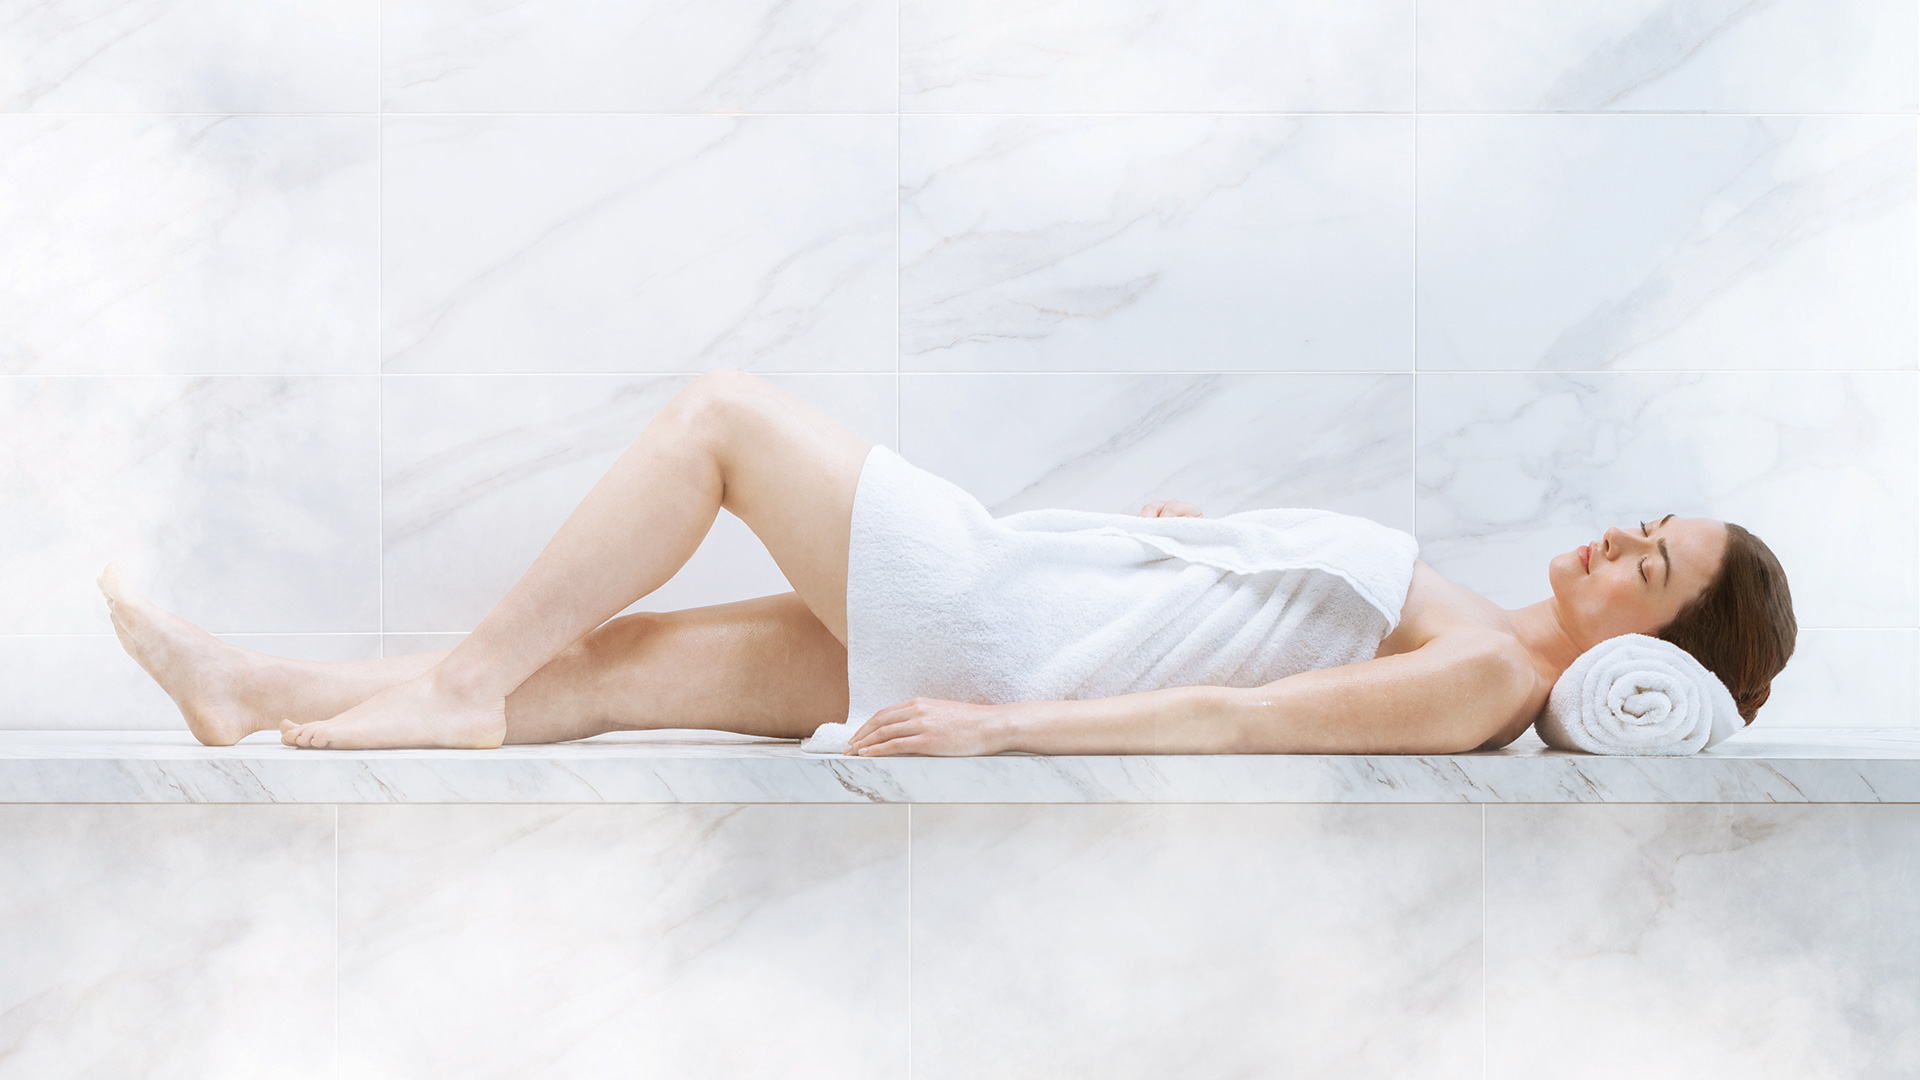 Women laying in Steam Shower